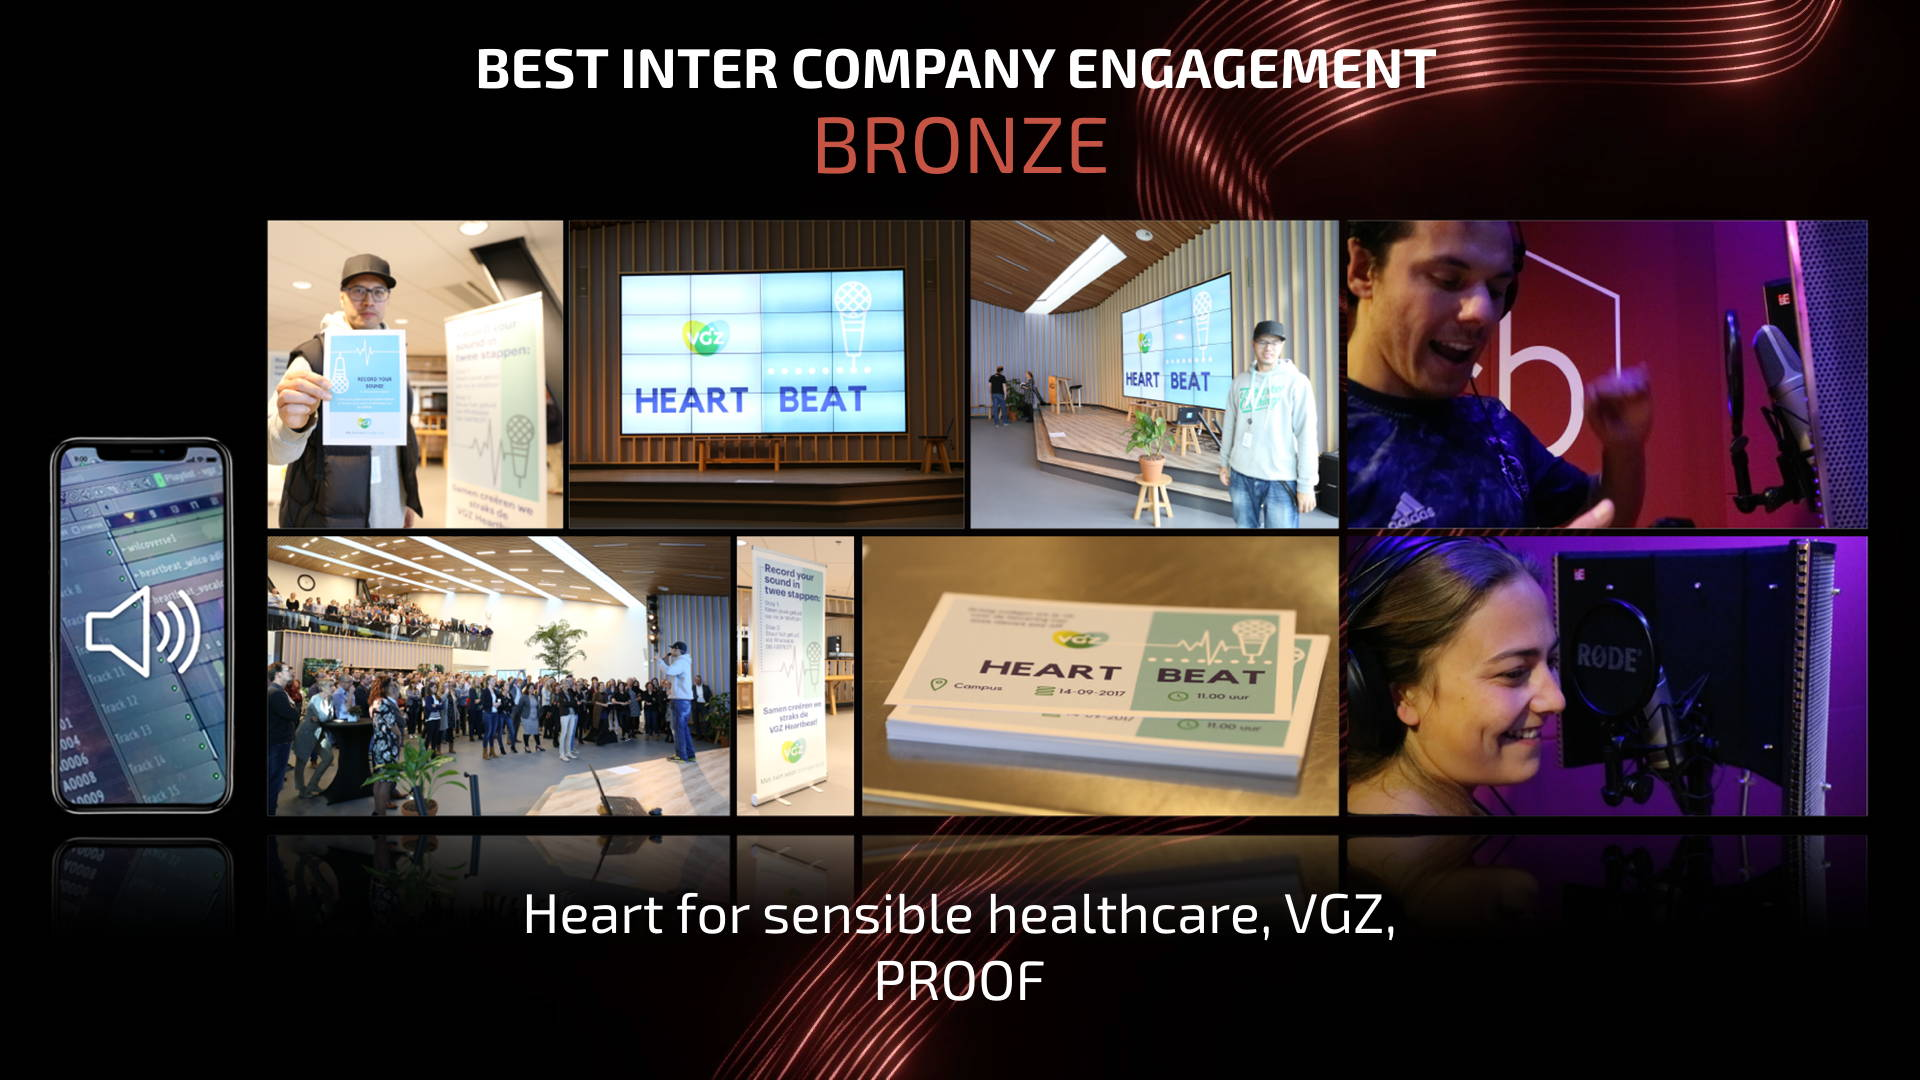 Best Inter Company Engagement - Bronze